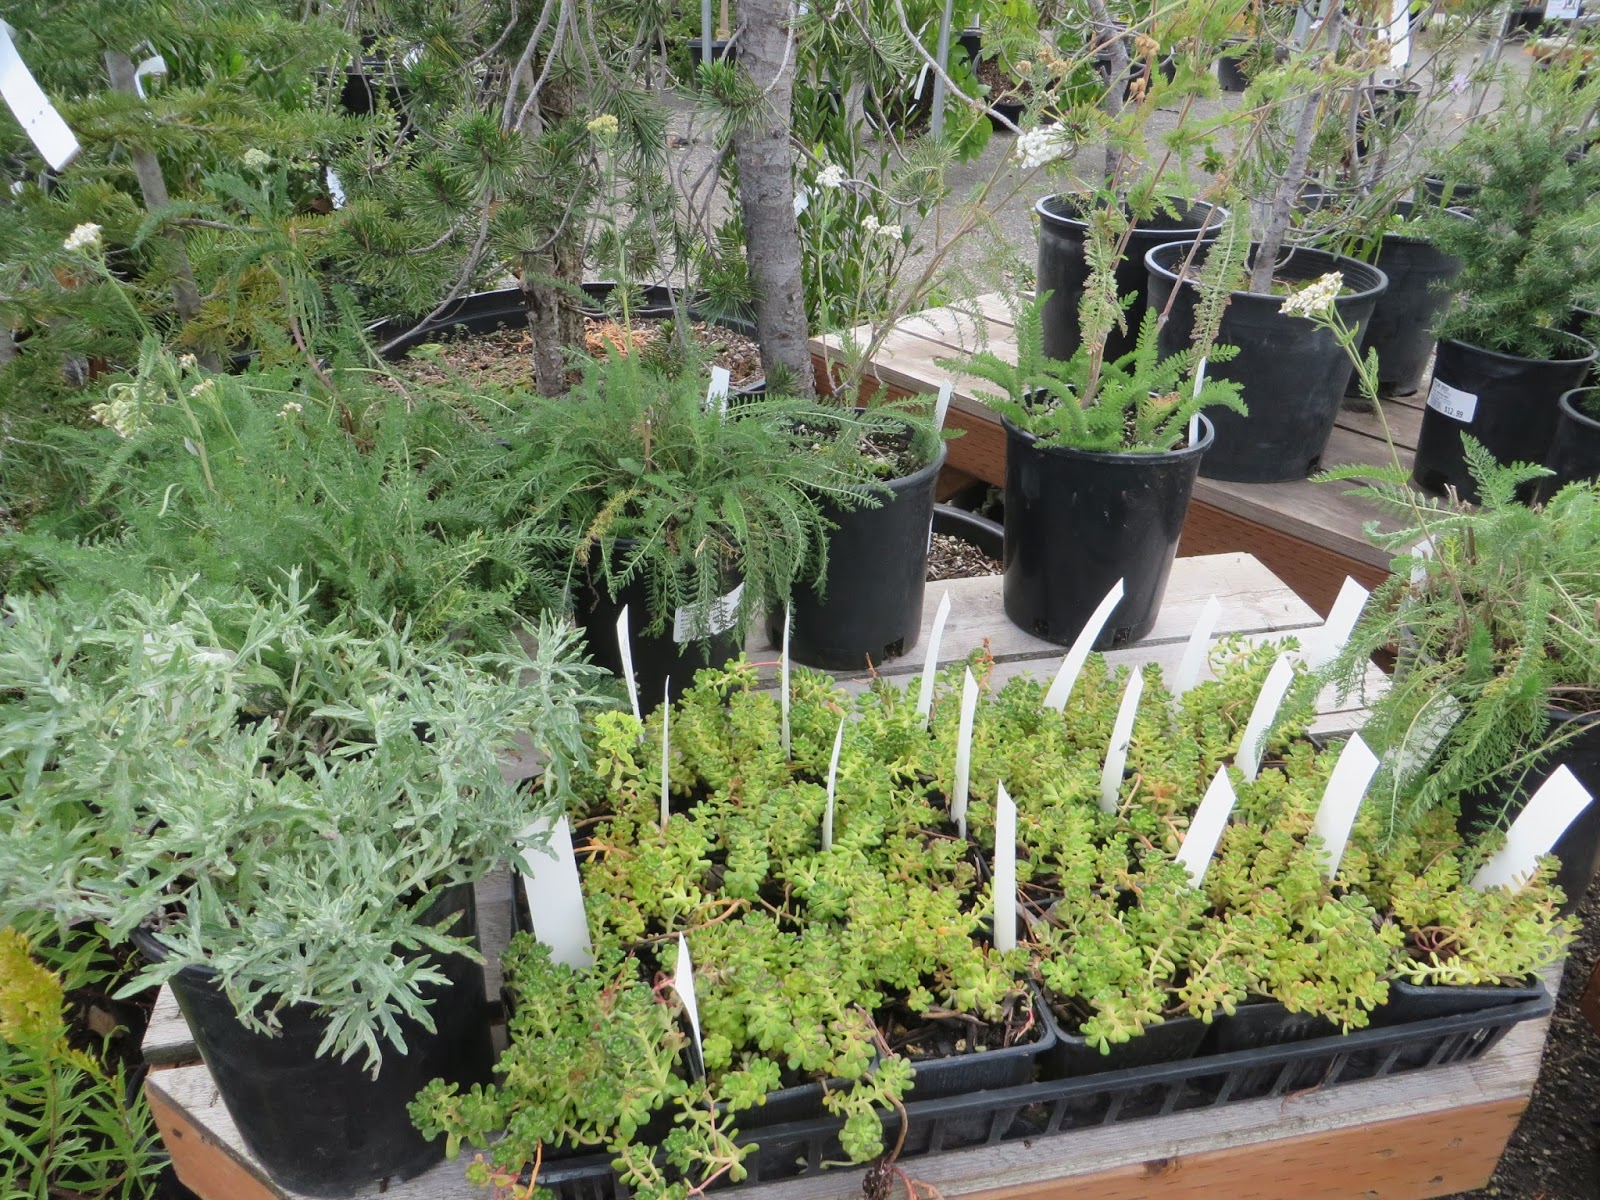 Juncus Patens And Lots Of Sun Perennials This Whole Island Plants Is New To The Native Area I Like It Good Job Portland Nursery